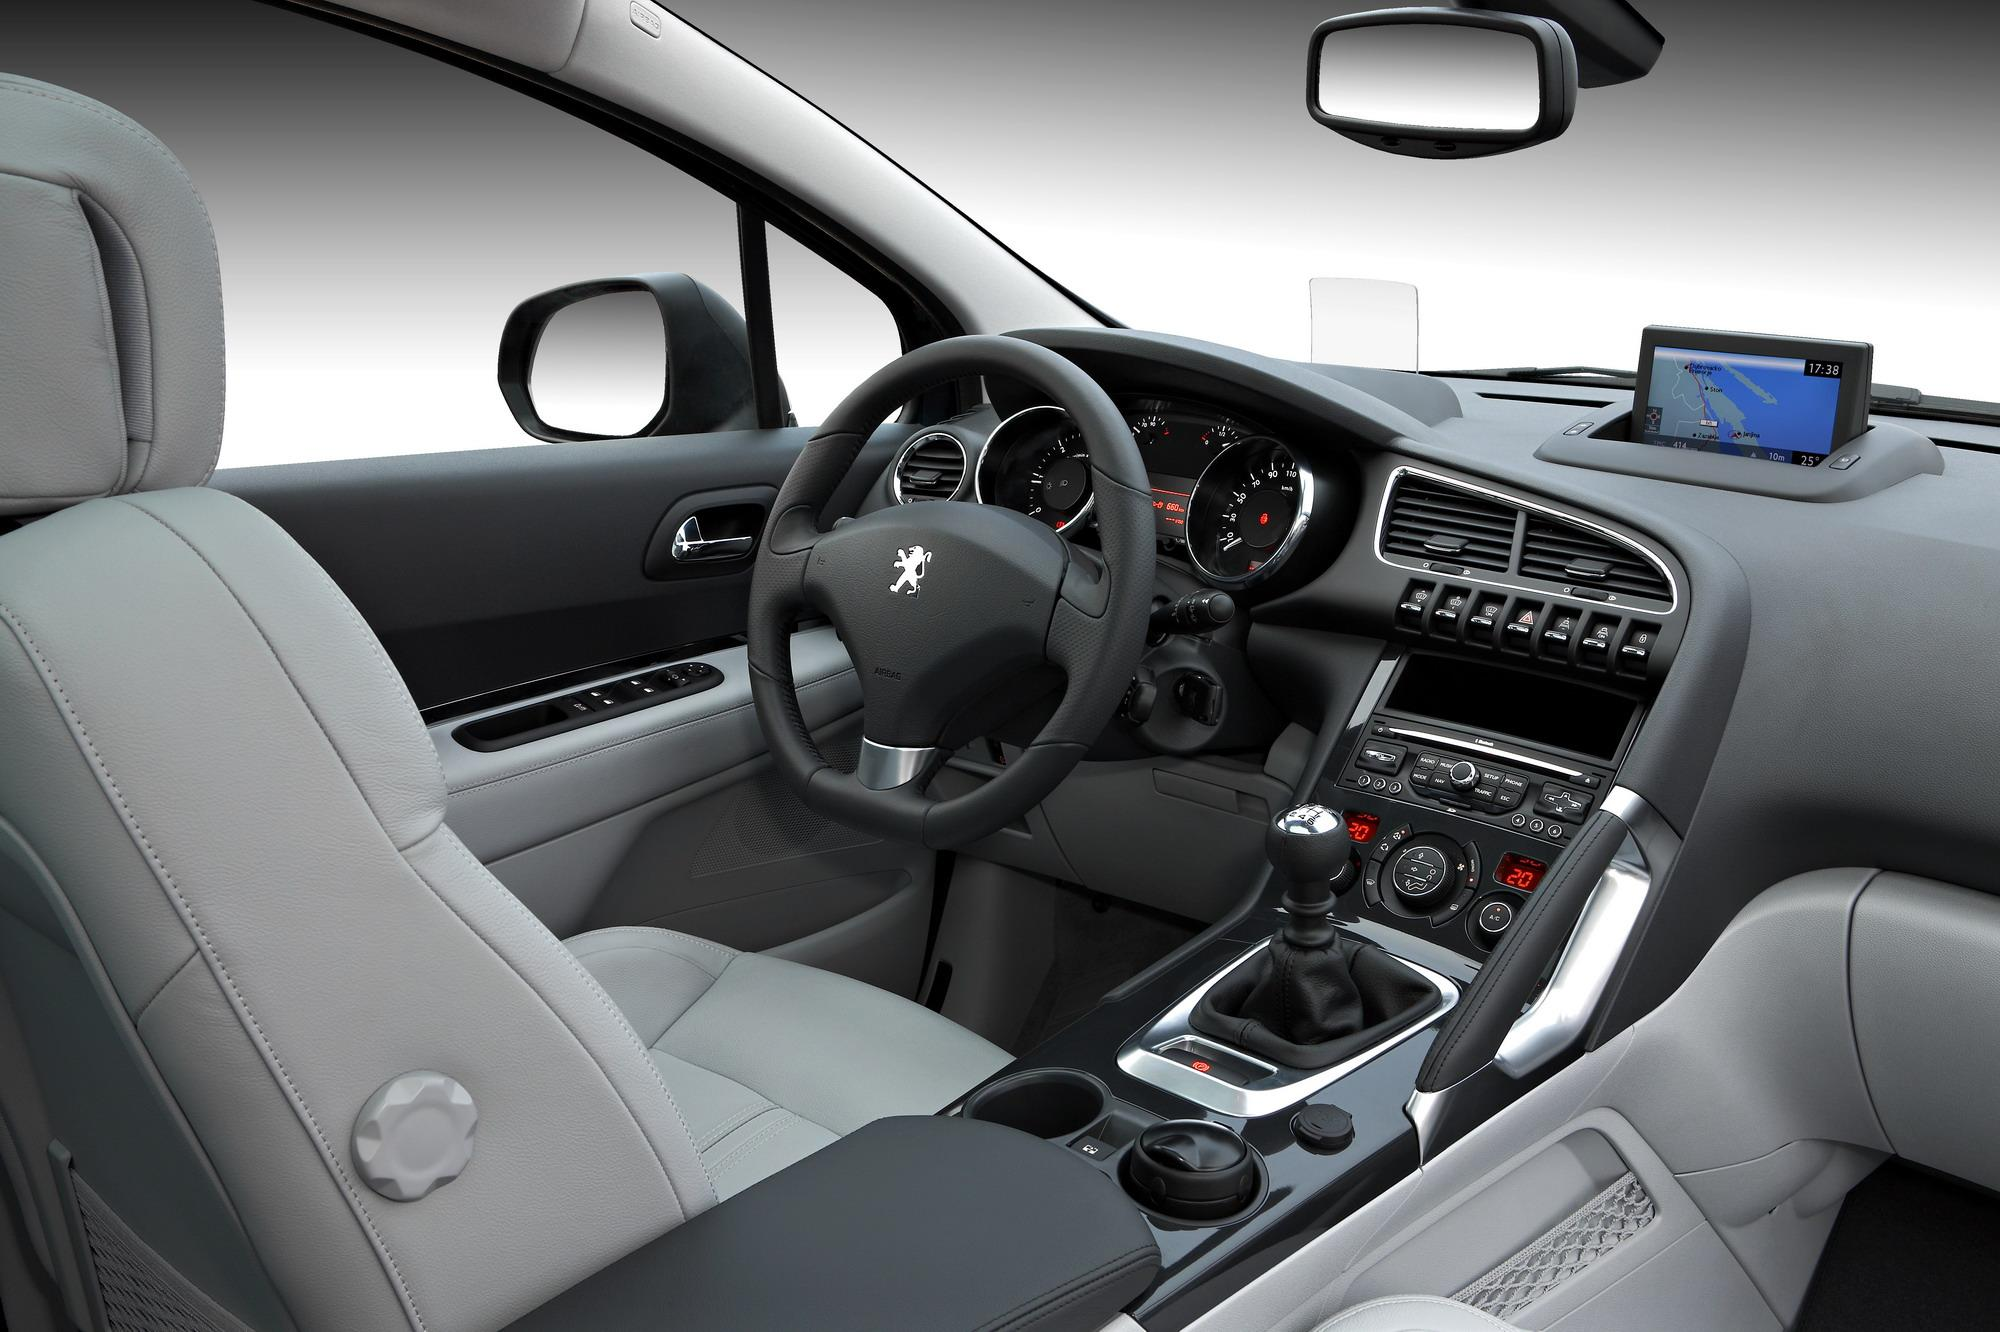 peugeot 3008 electronic manual gearbox bmp6